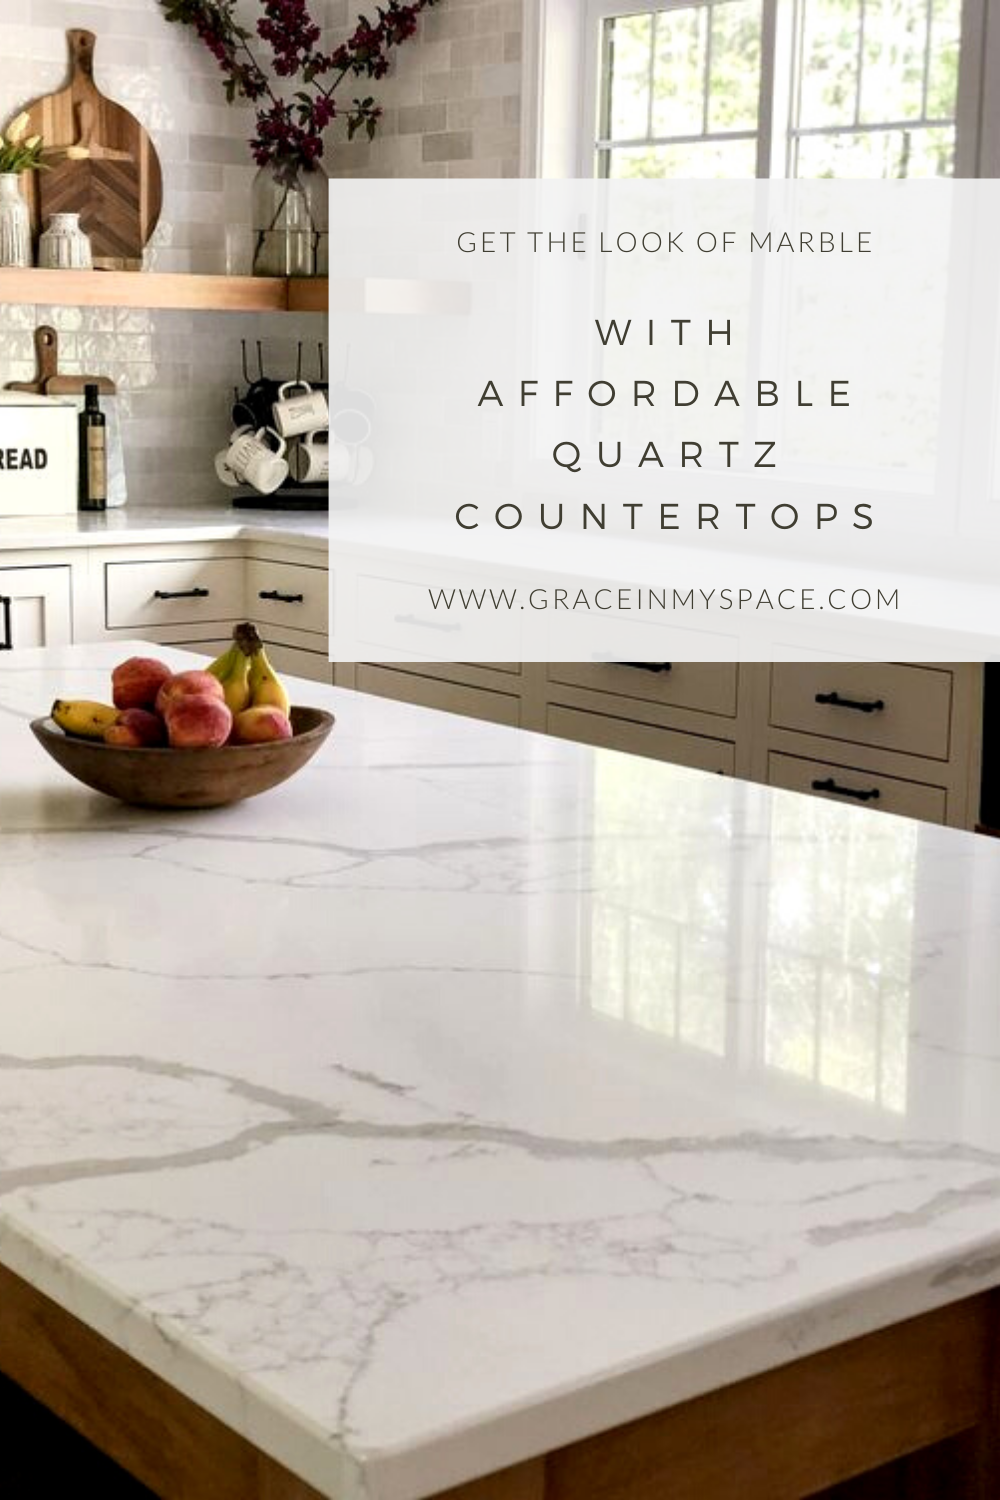 15 Affordable Quartz That Look Like Marble In 2021 Affordable Kitchen Countertops Marble Countertops Kitchen Quartz Kitchen Countertops White